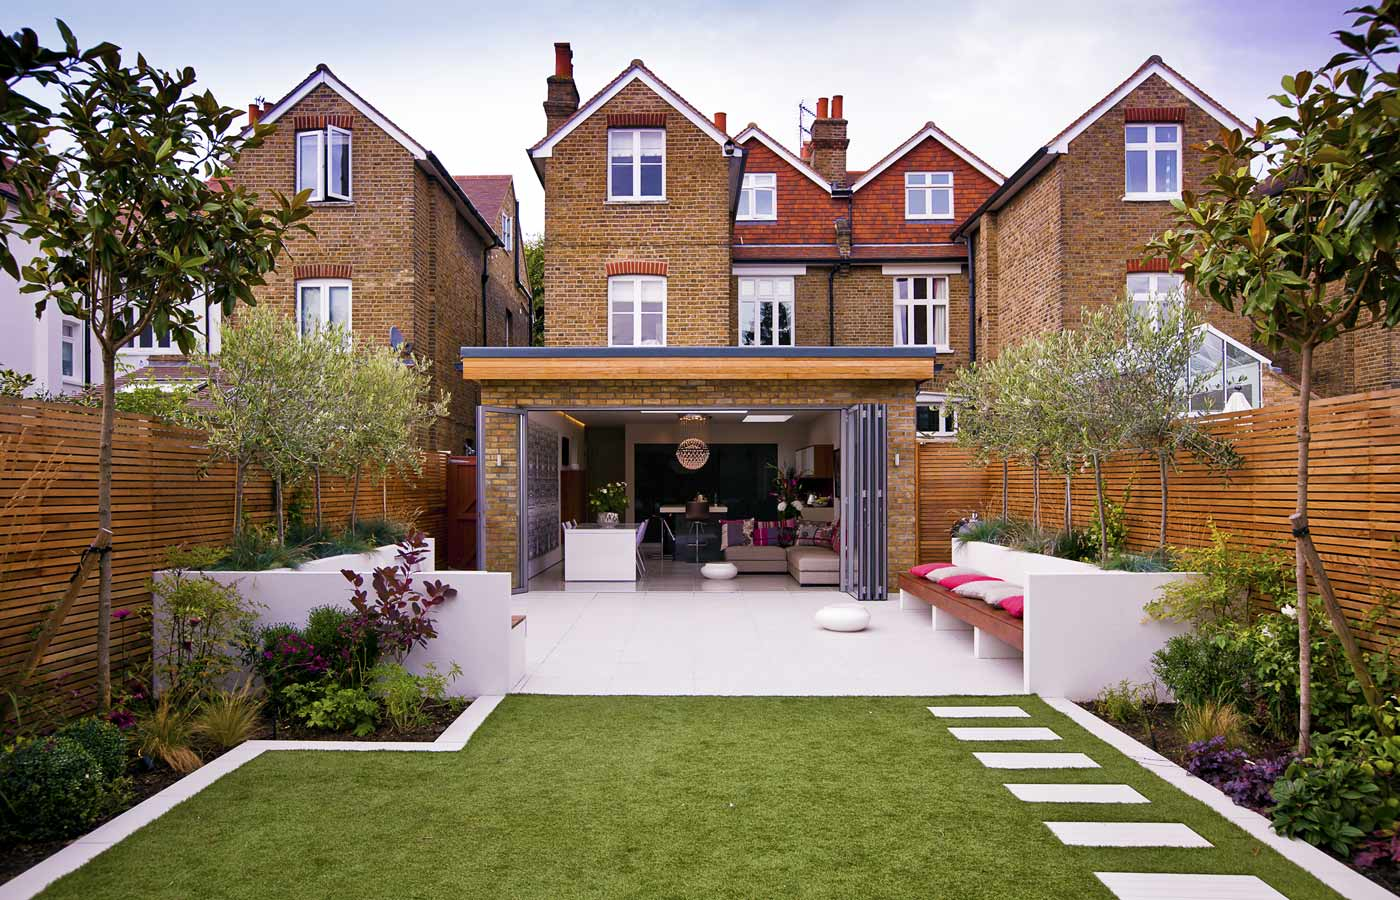 Long thin garden design family garden design for Home garden design uk